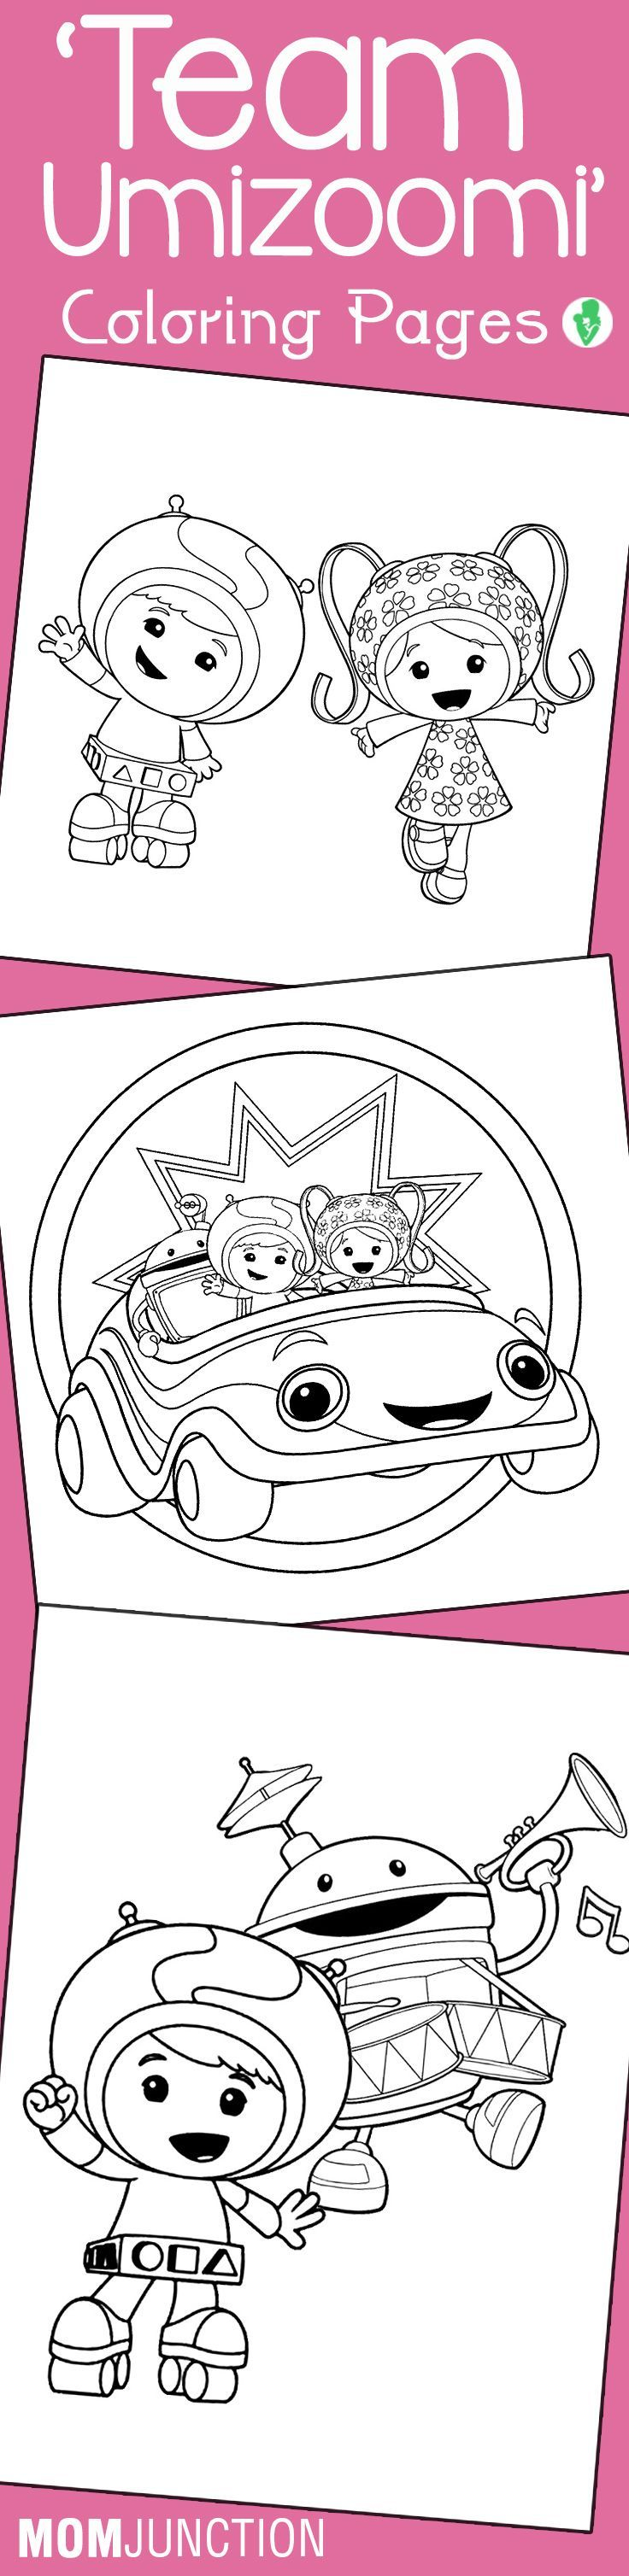 10 Best \'Team Umizoomi\' Coloring Pages For Your Toddler | Free printable